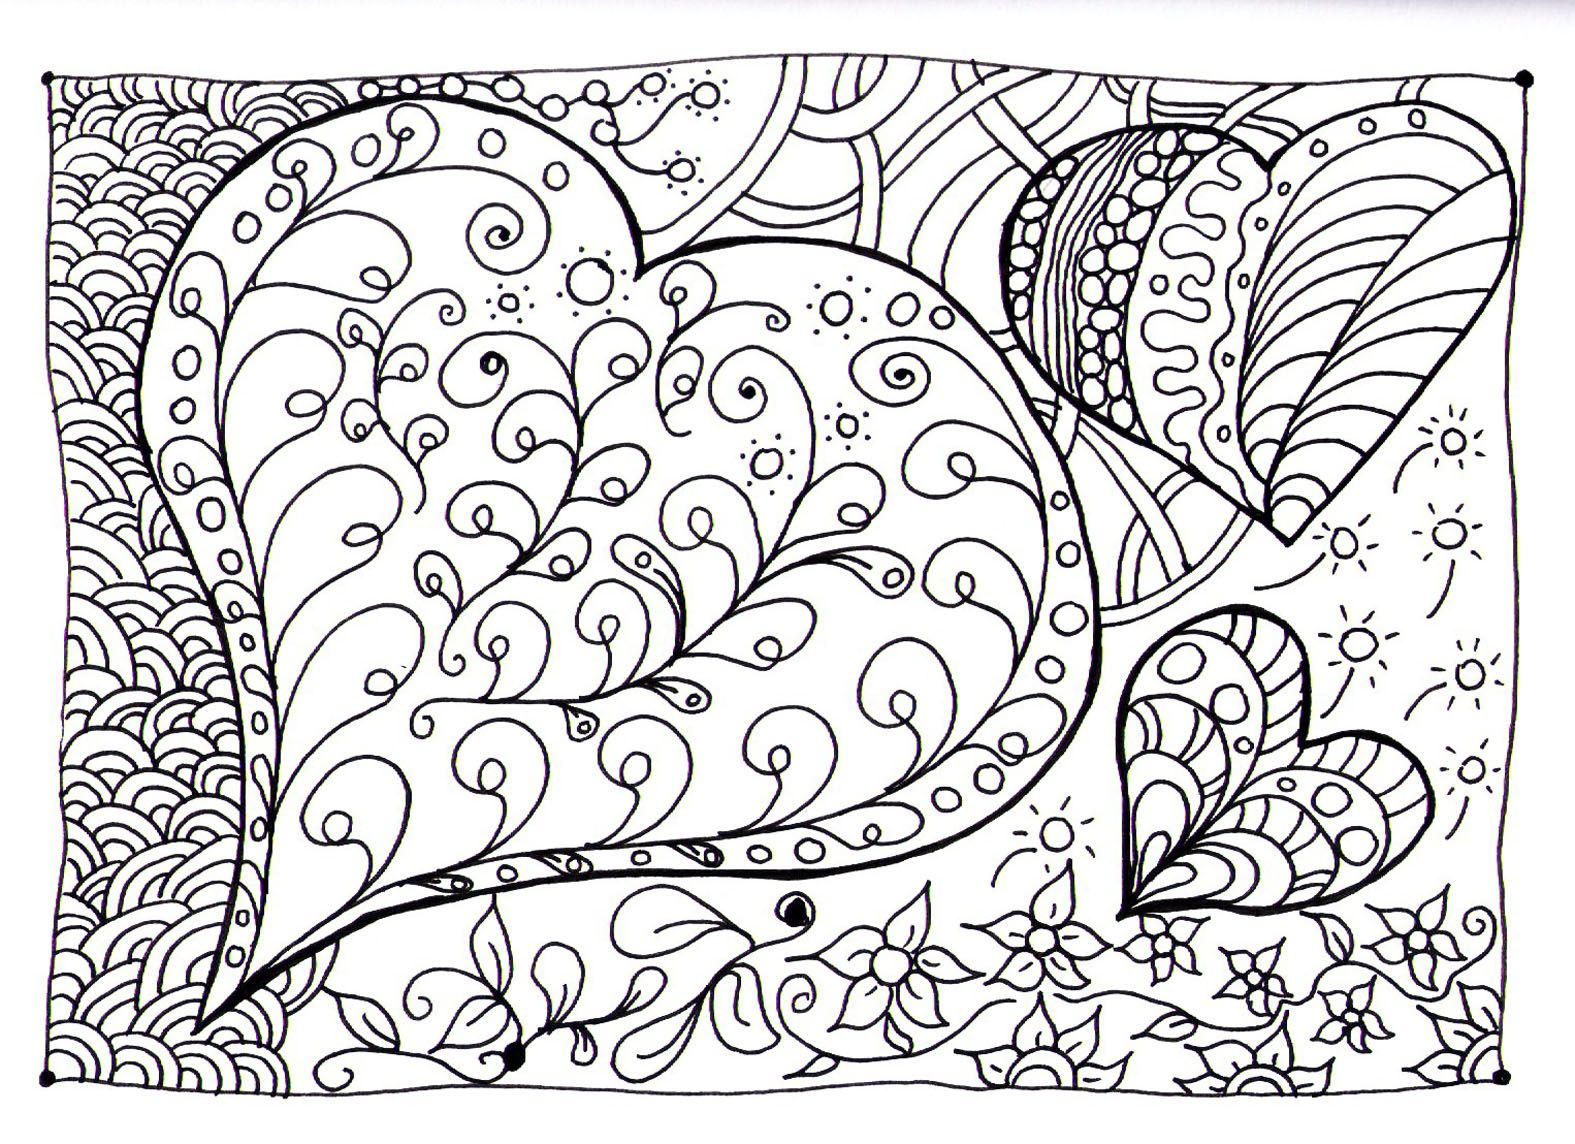 free printable coloring pages for adults zen : Free Coloring Page Coloring Heart Zen